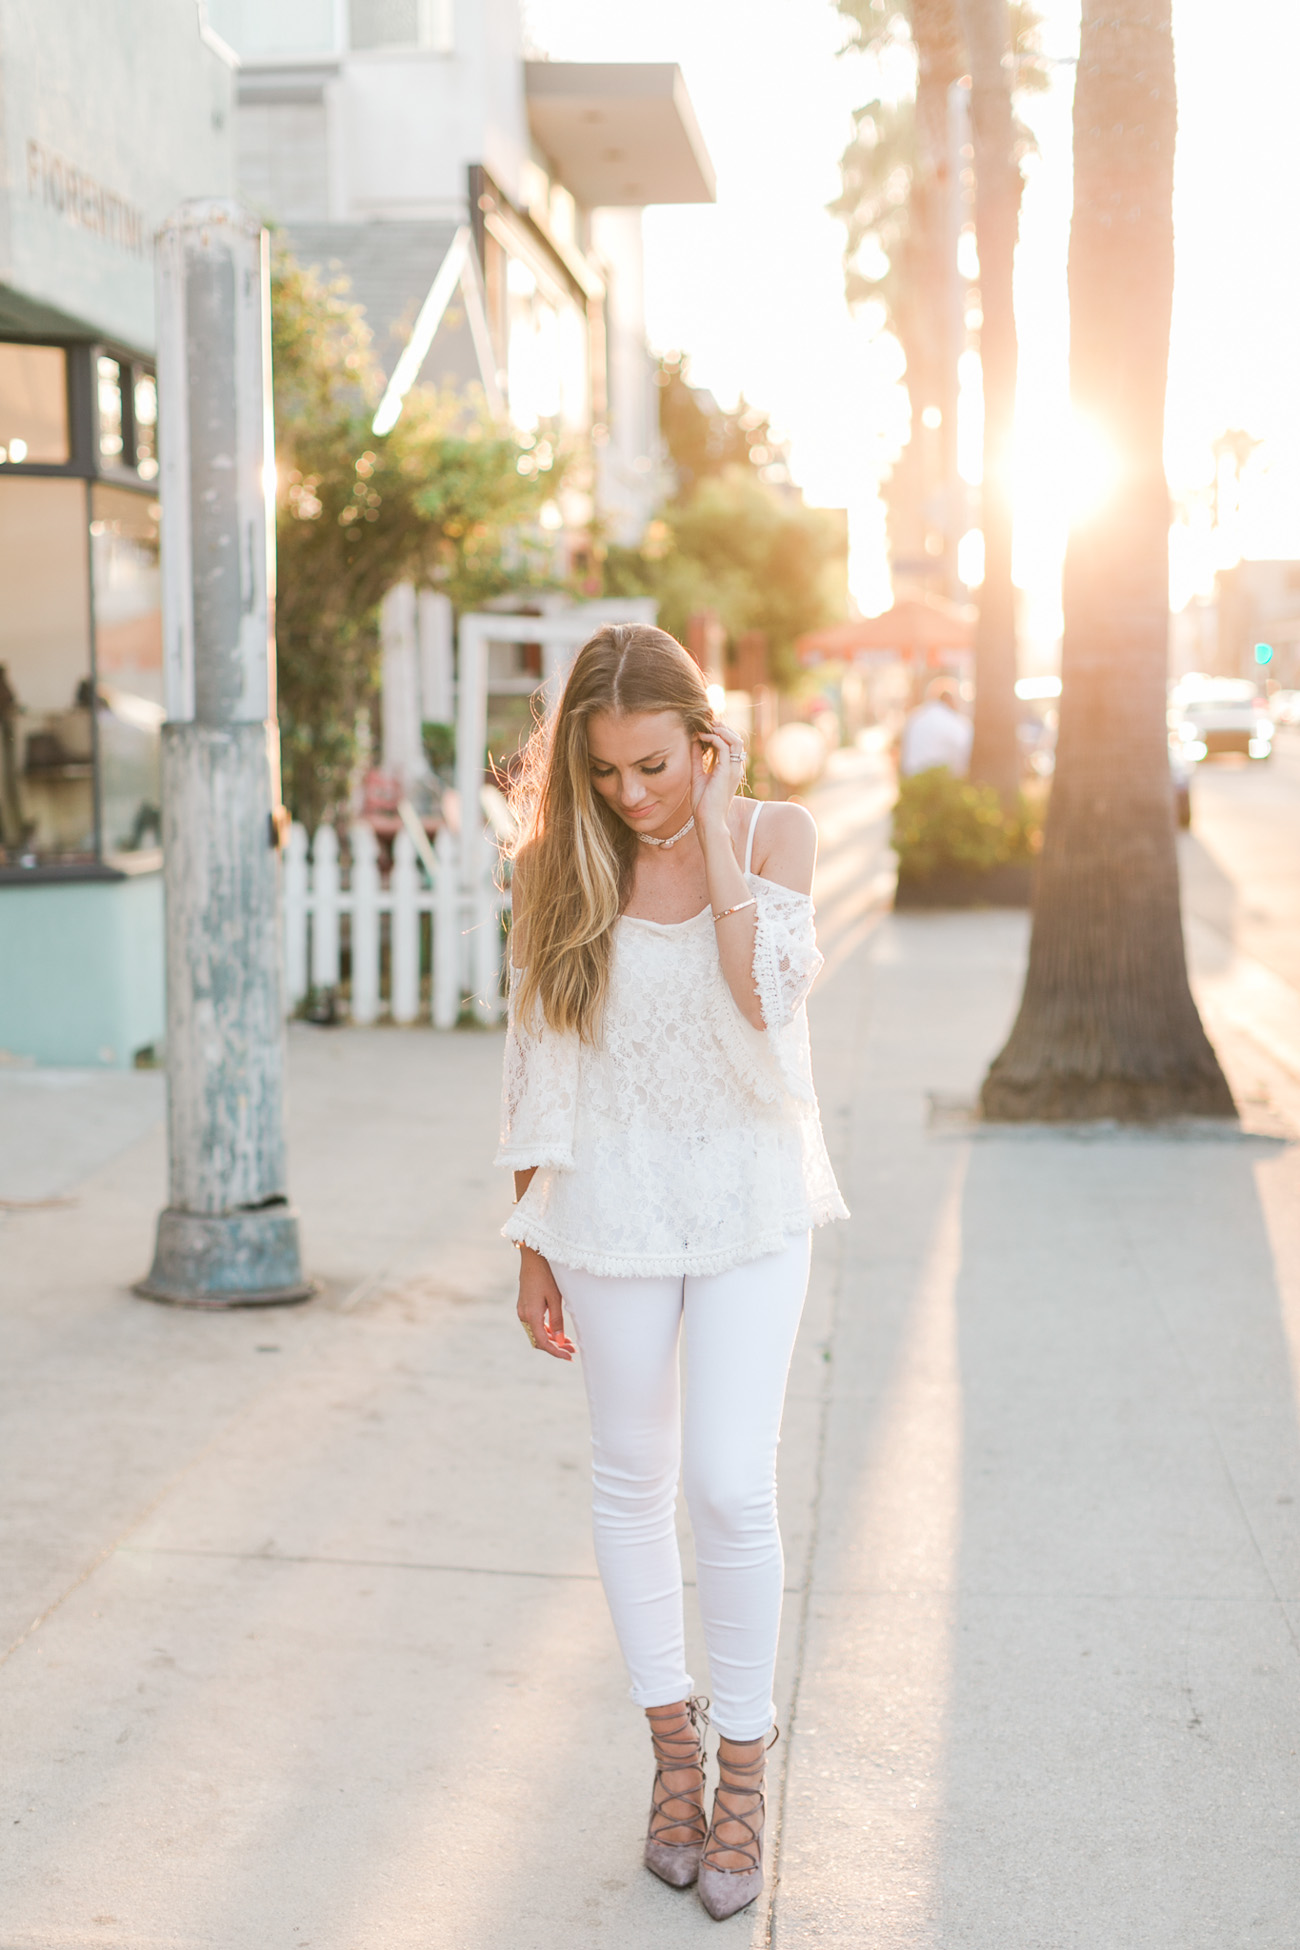 blogging with a purpose angela lanter hello gorgeous